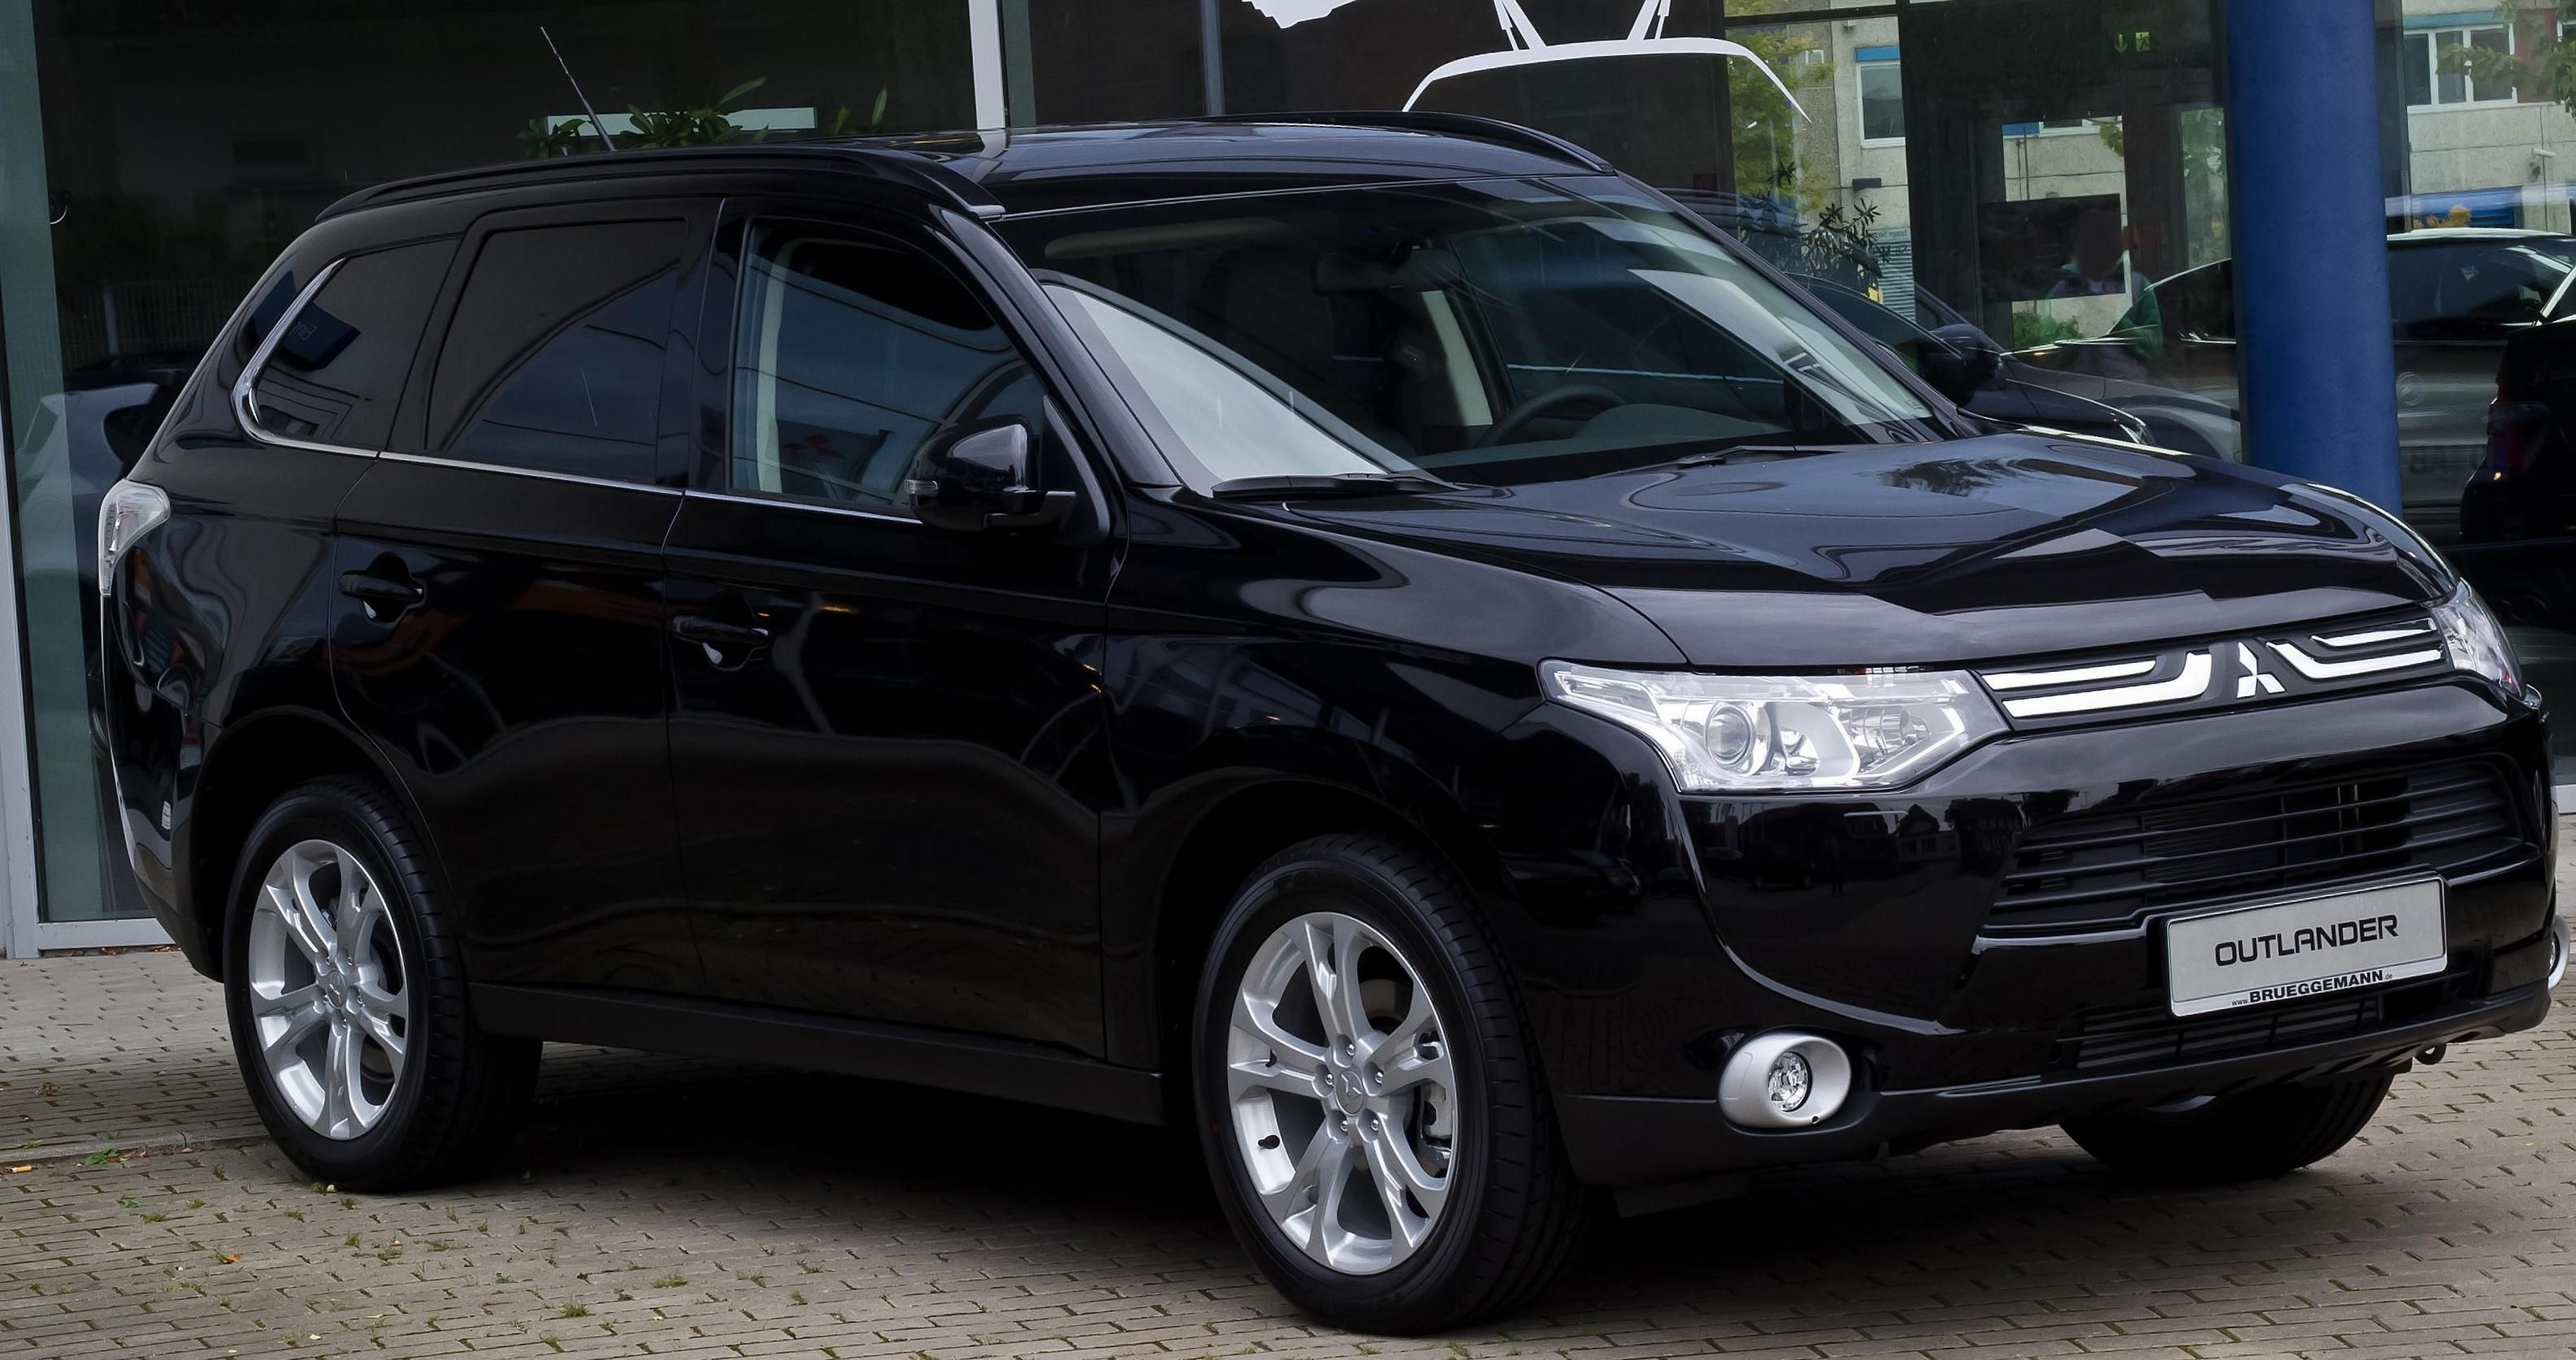 25 best mitsubishi outlander price ideas on pinterest mitsubishi outlander mitsubishi outlander review and outlander car